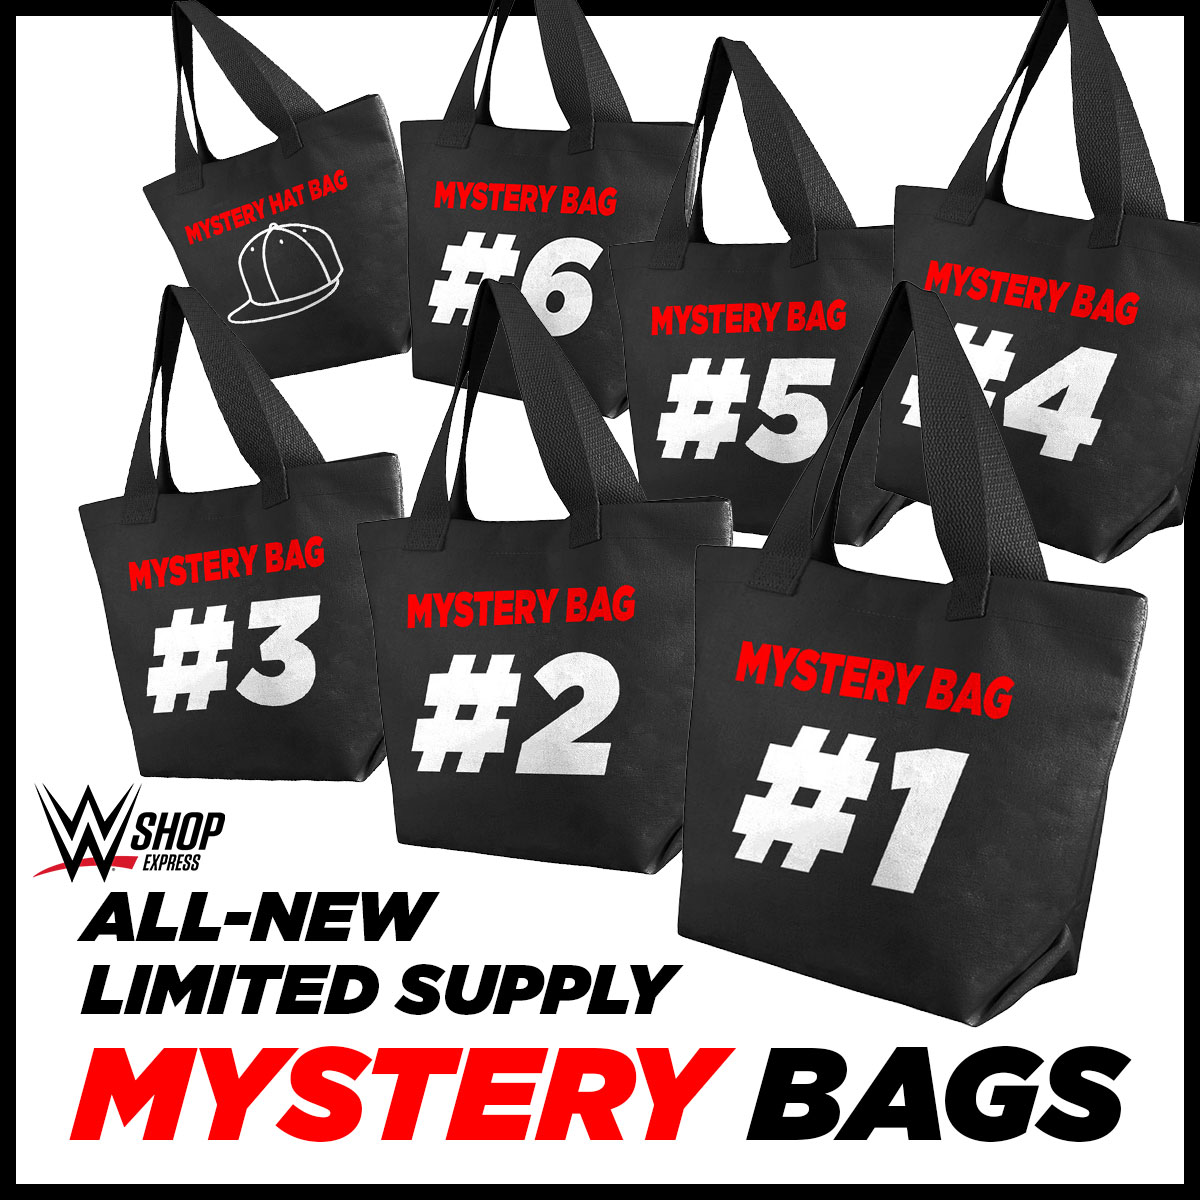 Available now at #WWEShopExpress: Do you like an amazing deal? Then our Limited Edition Mystery Bags are perfect for you! Each bag contains 4 #WWE t-shirts from our archives for an unbelievable price & each bag number contains a different selection.  https://t.co/gETnGtVNvd https://t.co/dV7OK9vKgm